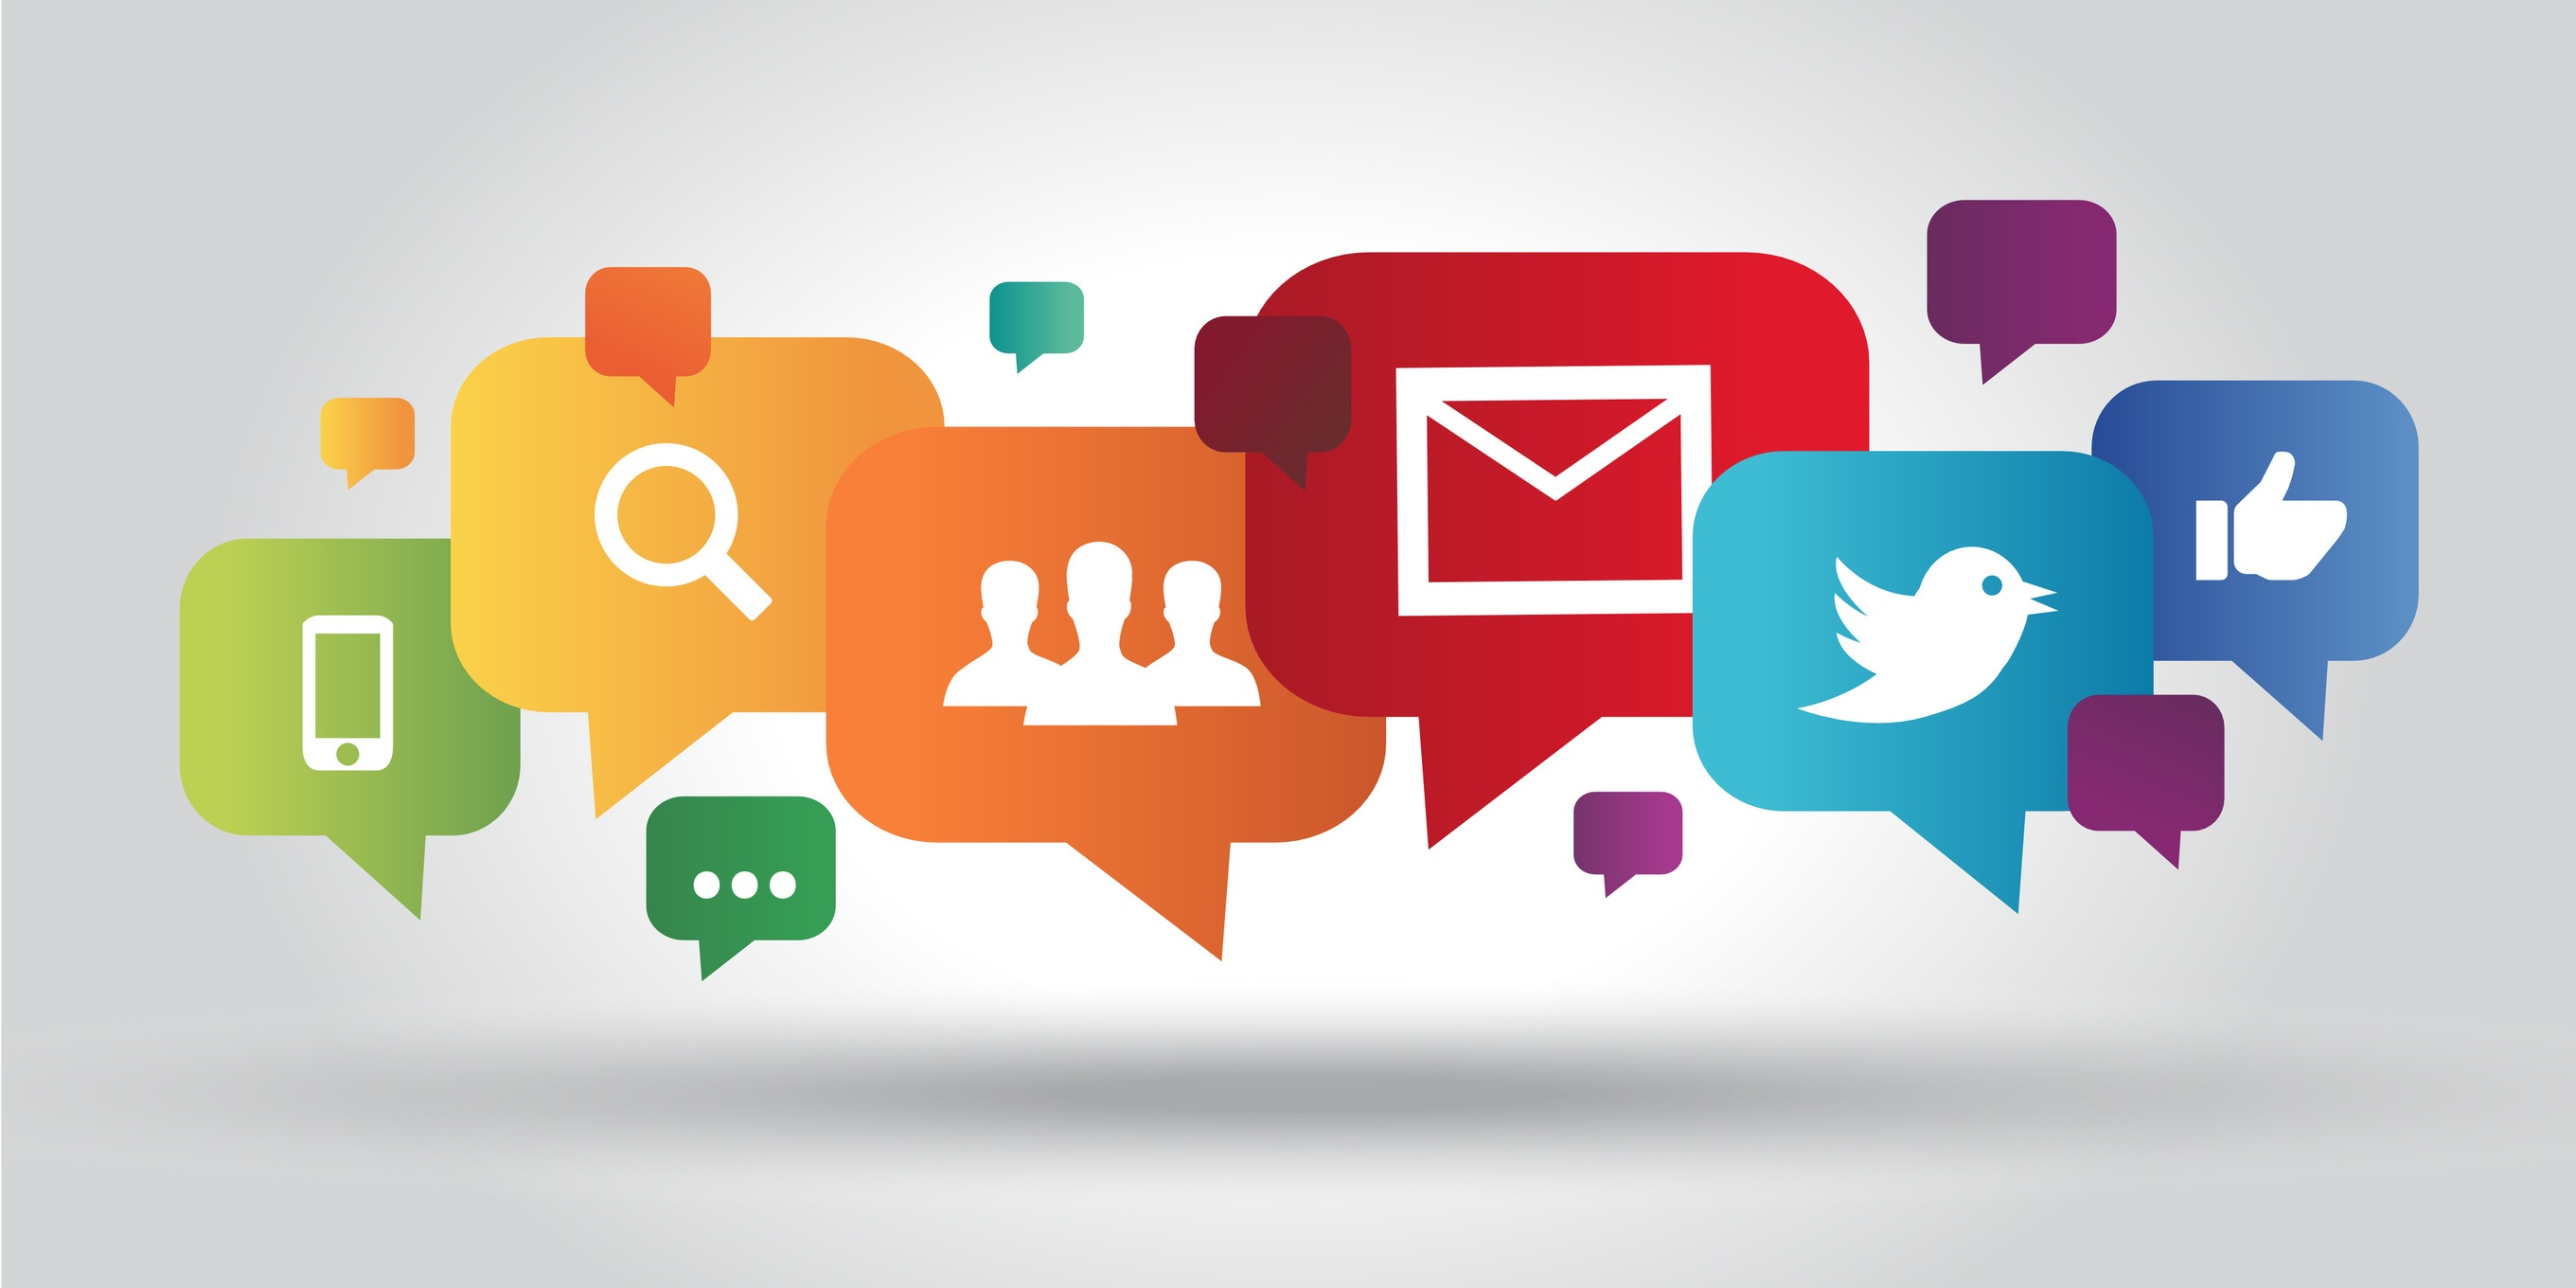 Online marketing can be blended with traditional marketing channels